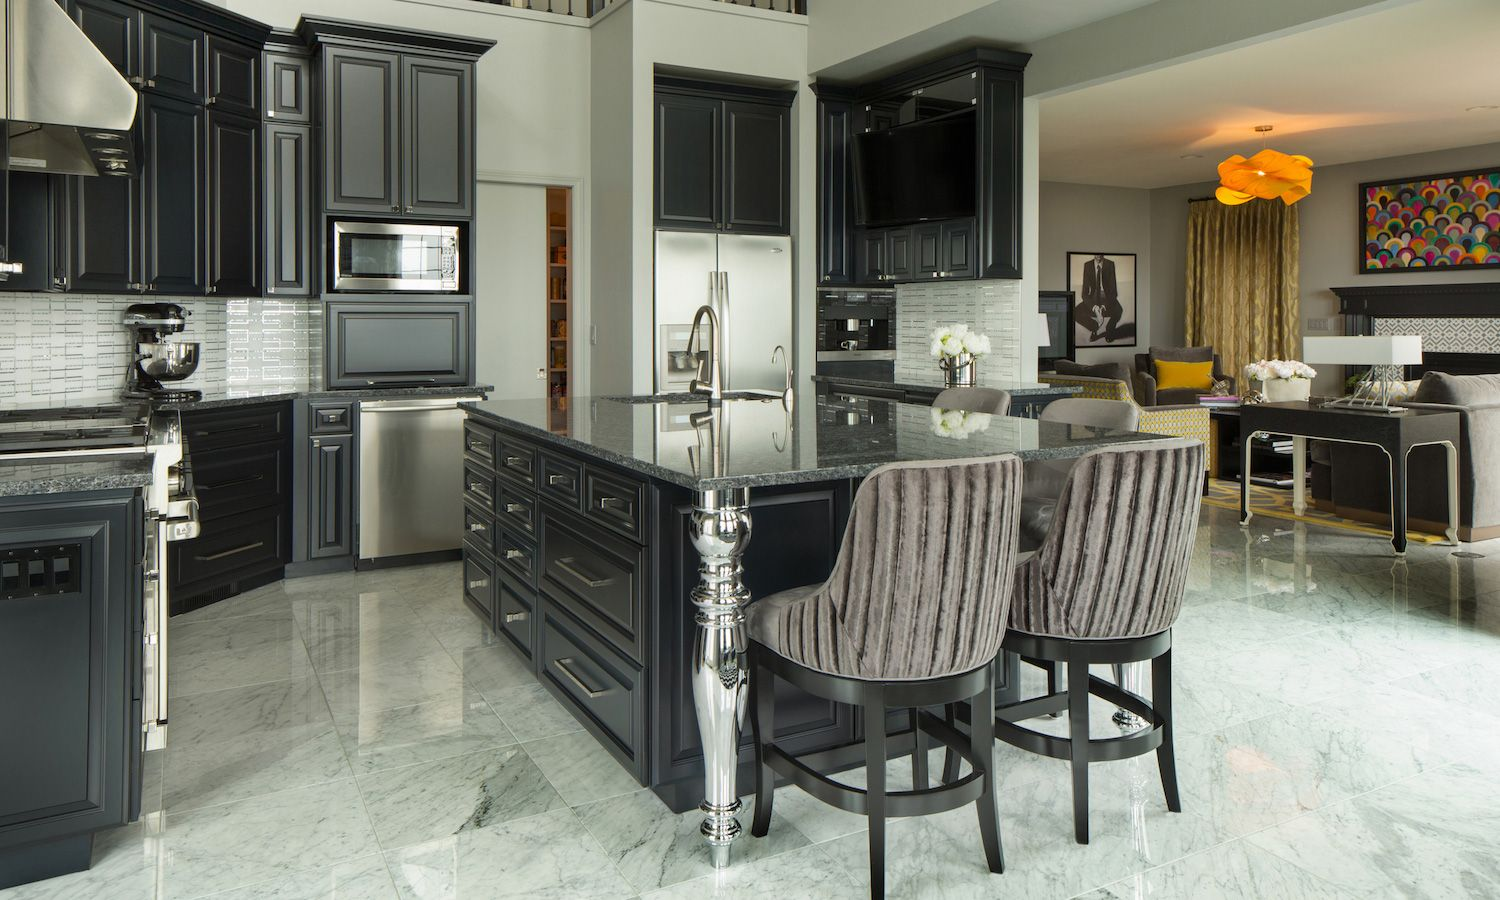 Uncategorized Kitchen Designers Portland Oregon kitchen design portland oregon home living room ideas interior designer in known for creative and custom interiors offering full services bath remodeling furnishings